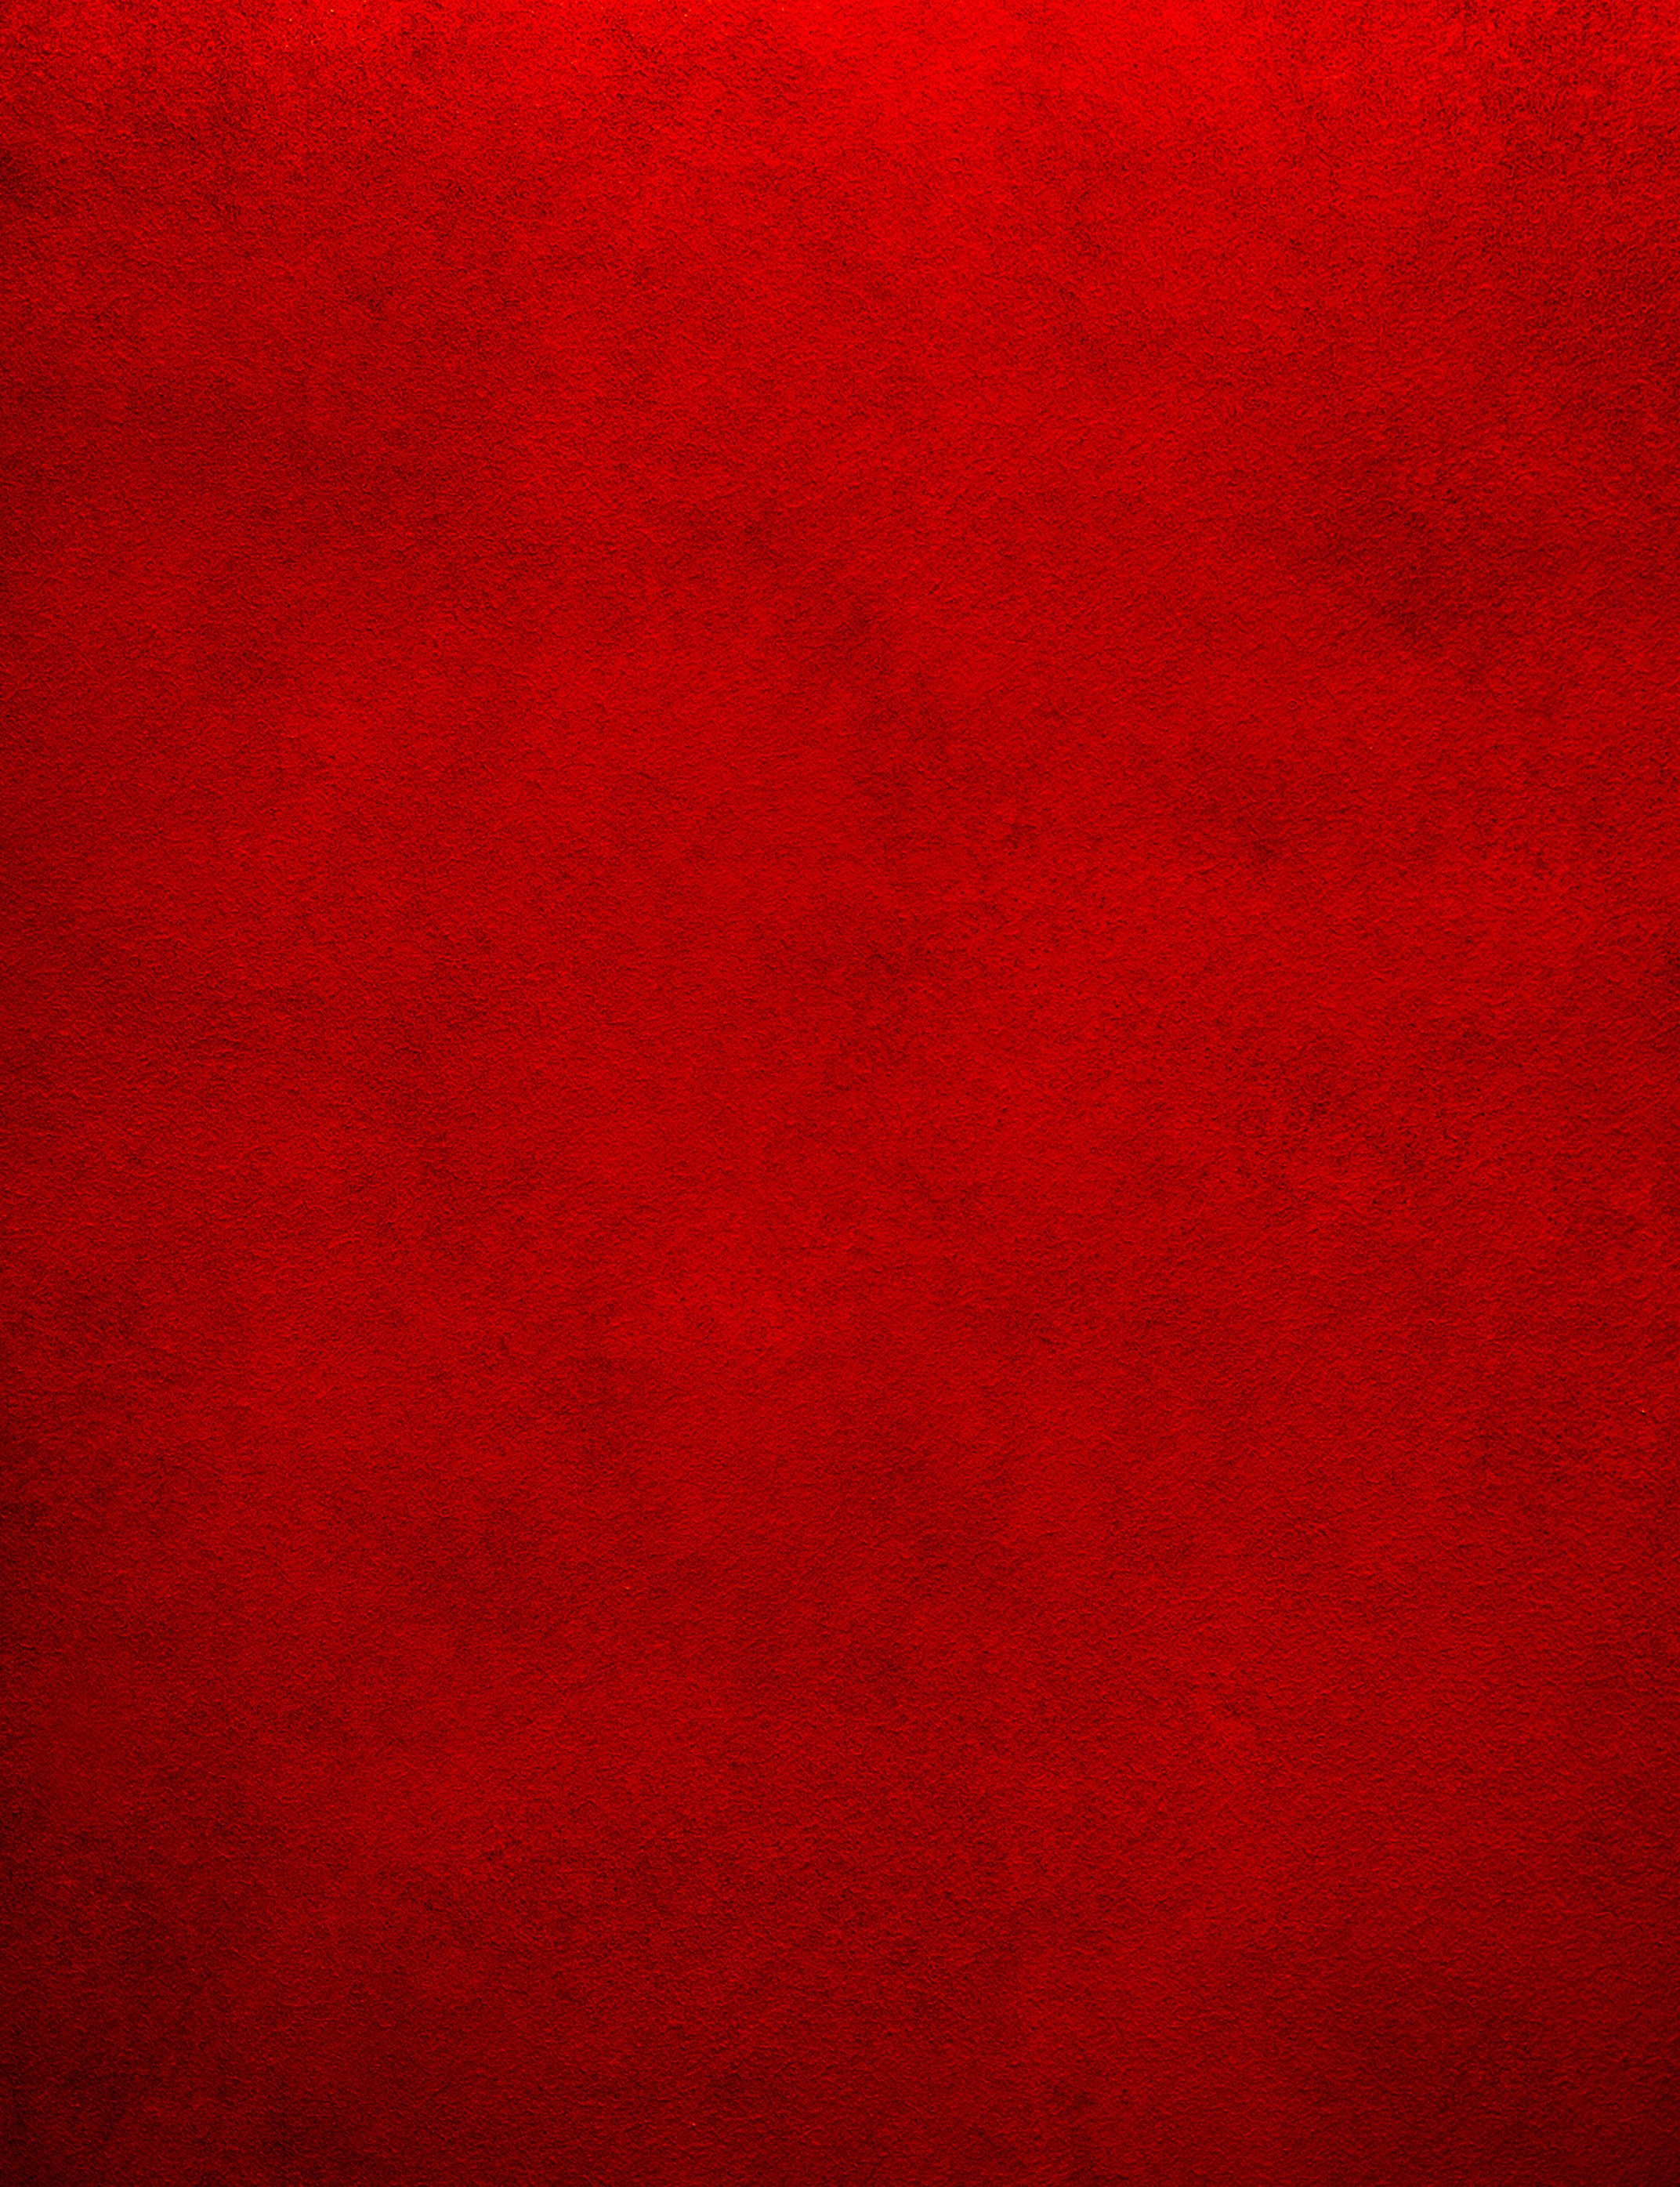 Red Texture background Download free awesome HD backgrounds for